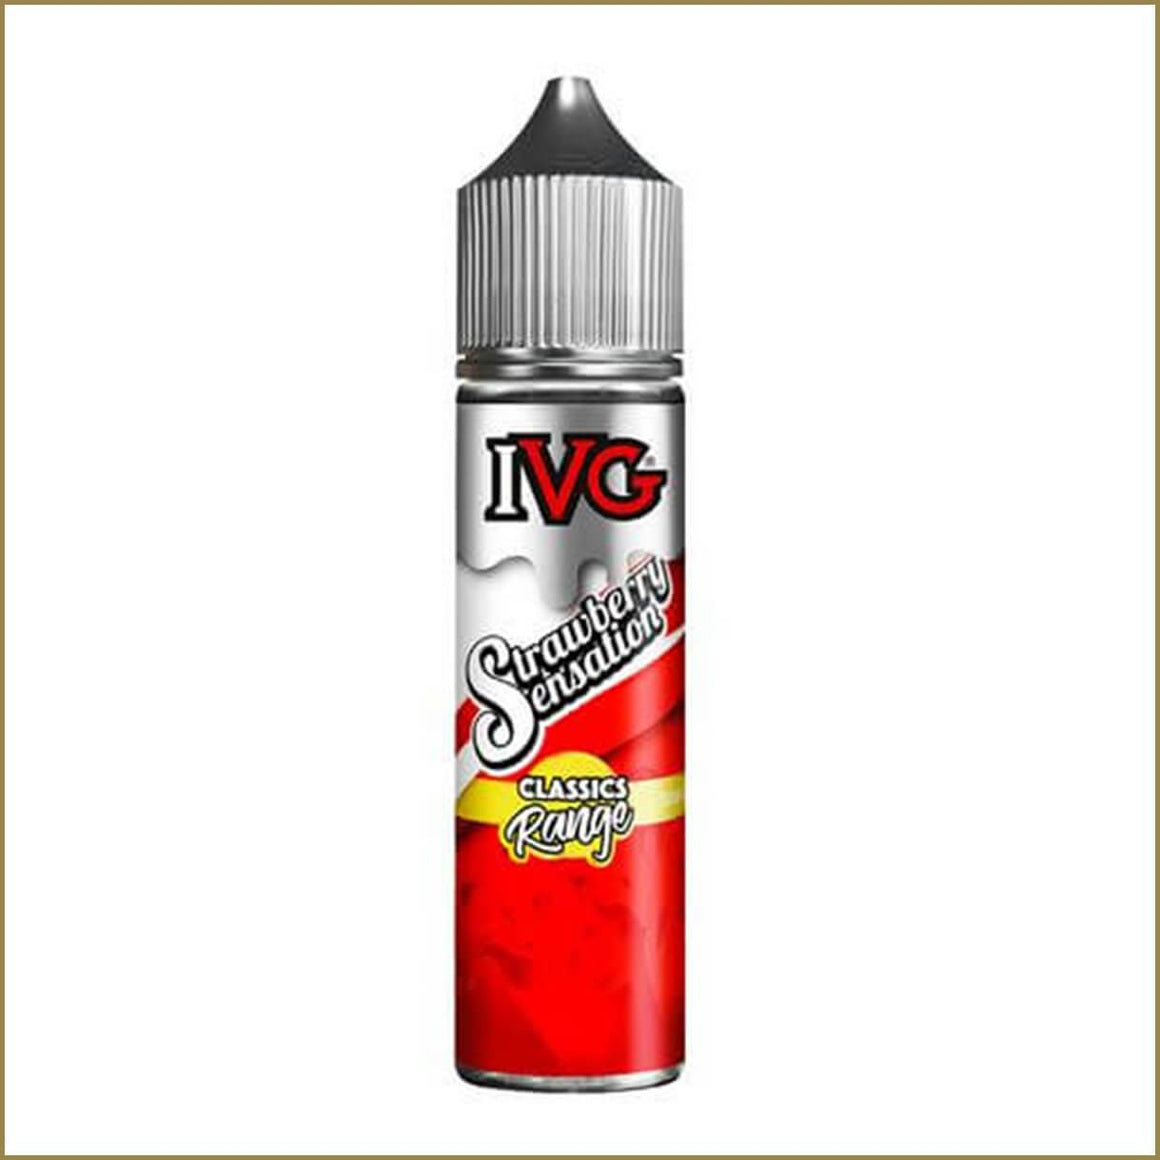 IVG Classics Strawberry Sensation 50ml